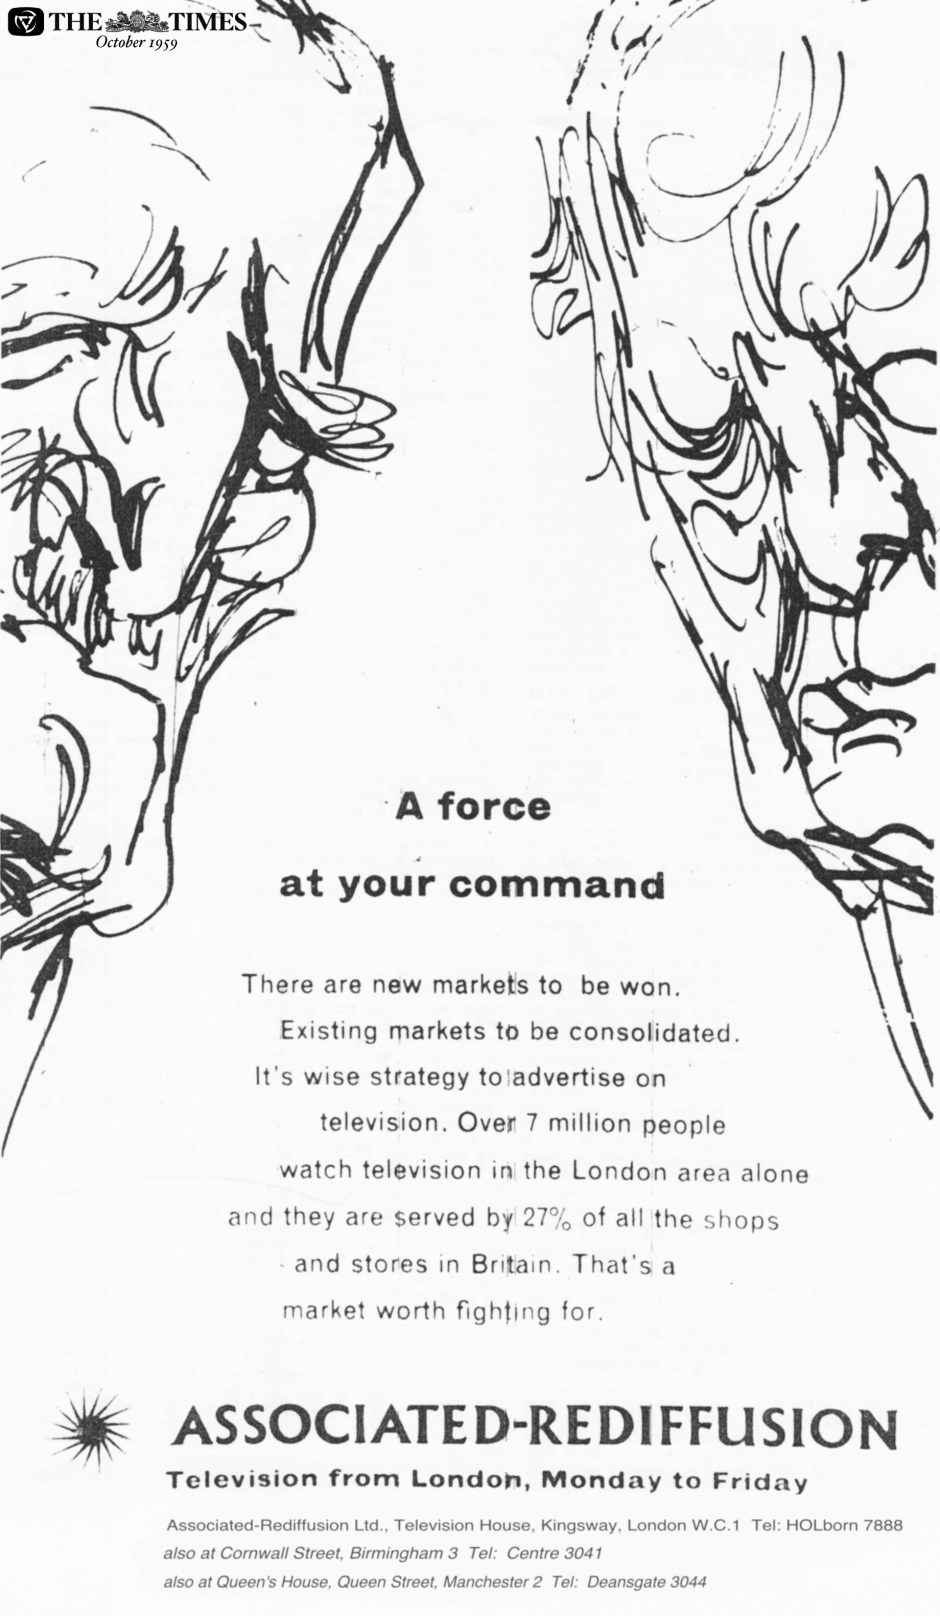 AR a force at your command